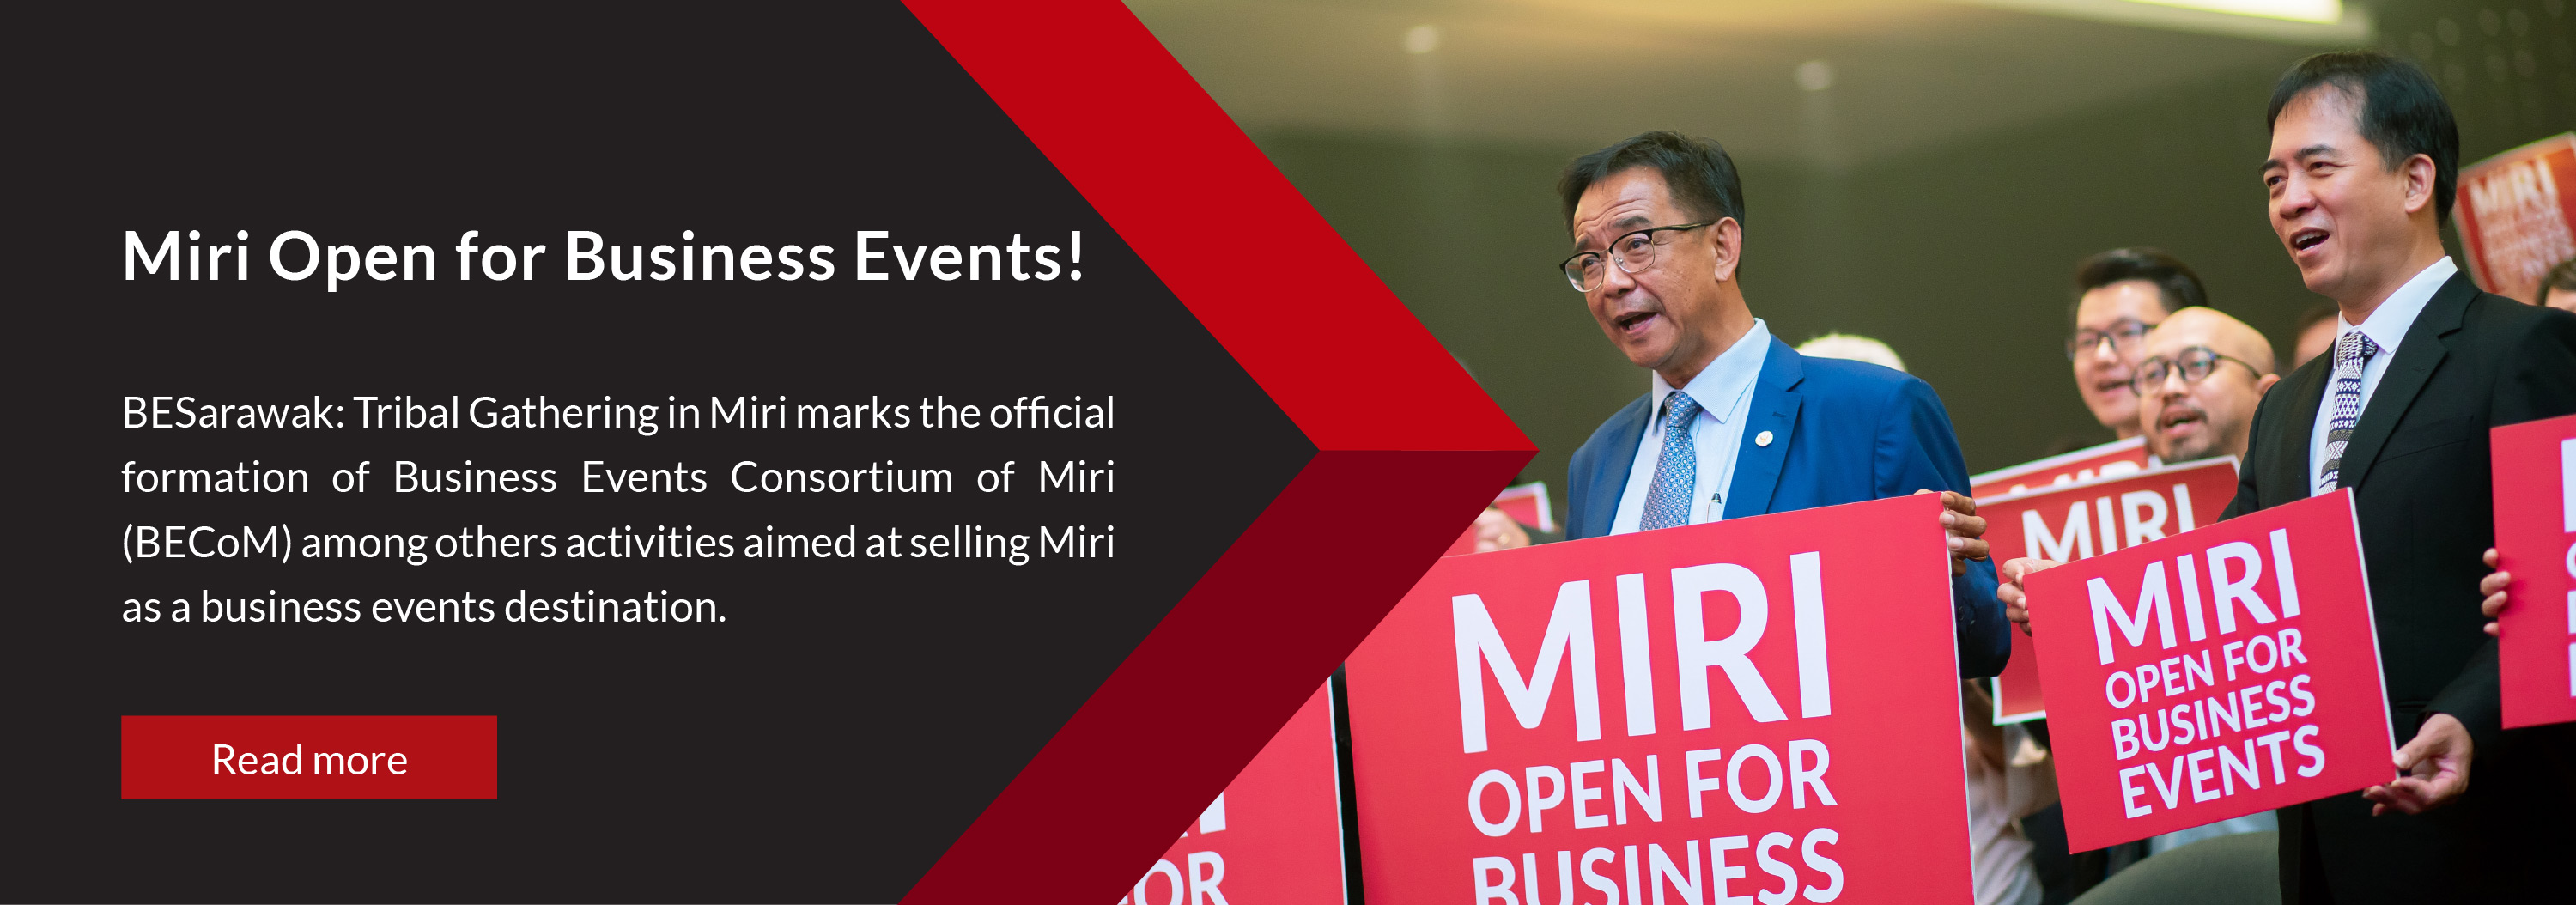 BESarawak: Tribal Gathering in Miri marks the official formation of Business Events Consortium of Miri (BECoM) among others activities aimed at selling Miri as a business events destination.